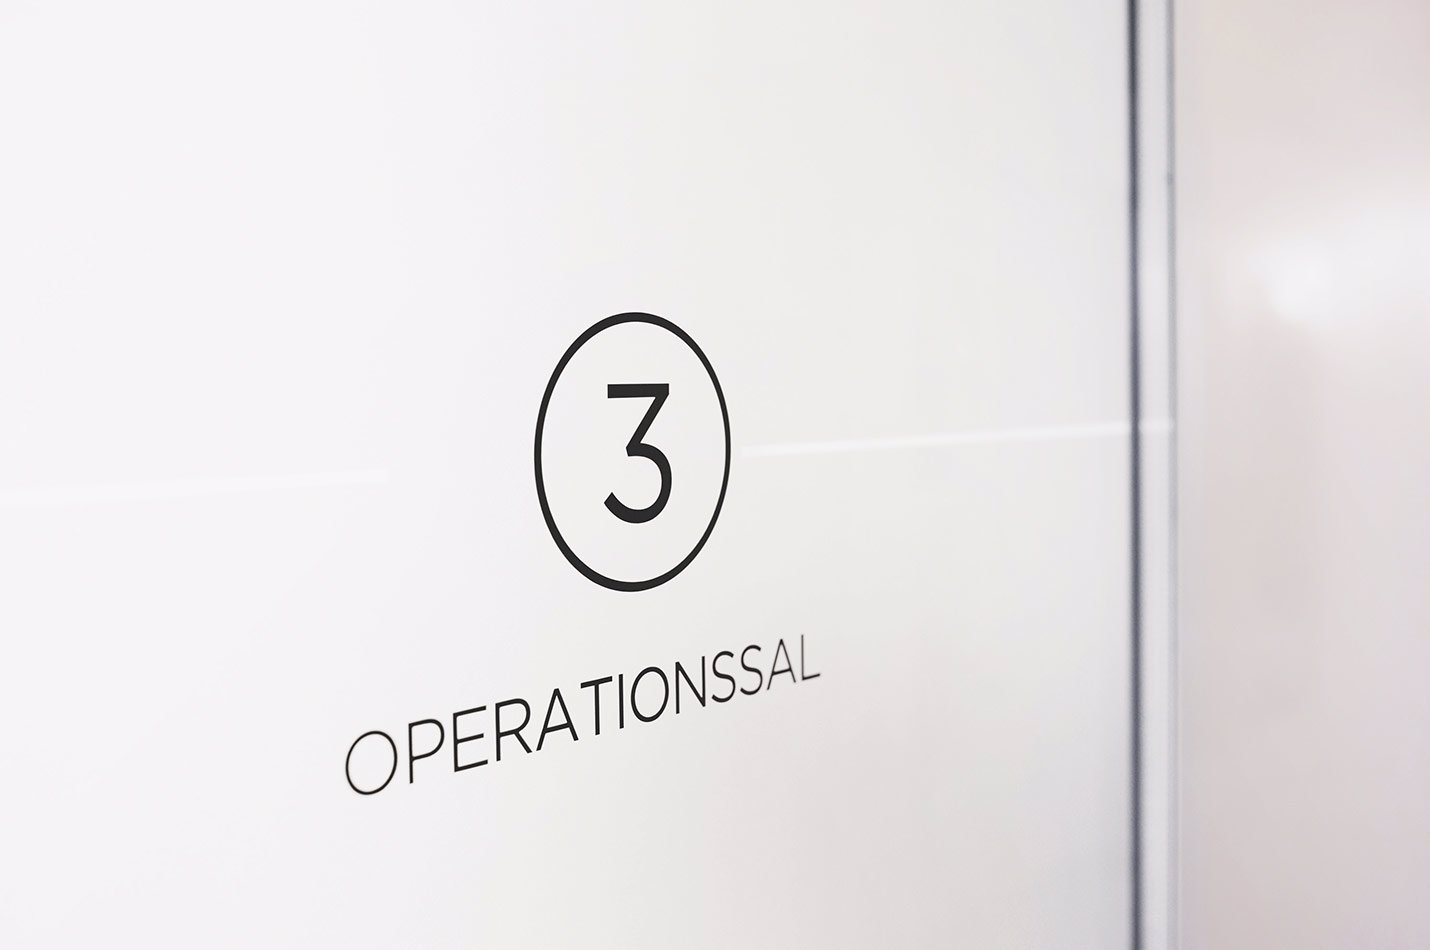 Operationssals dörr